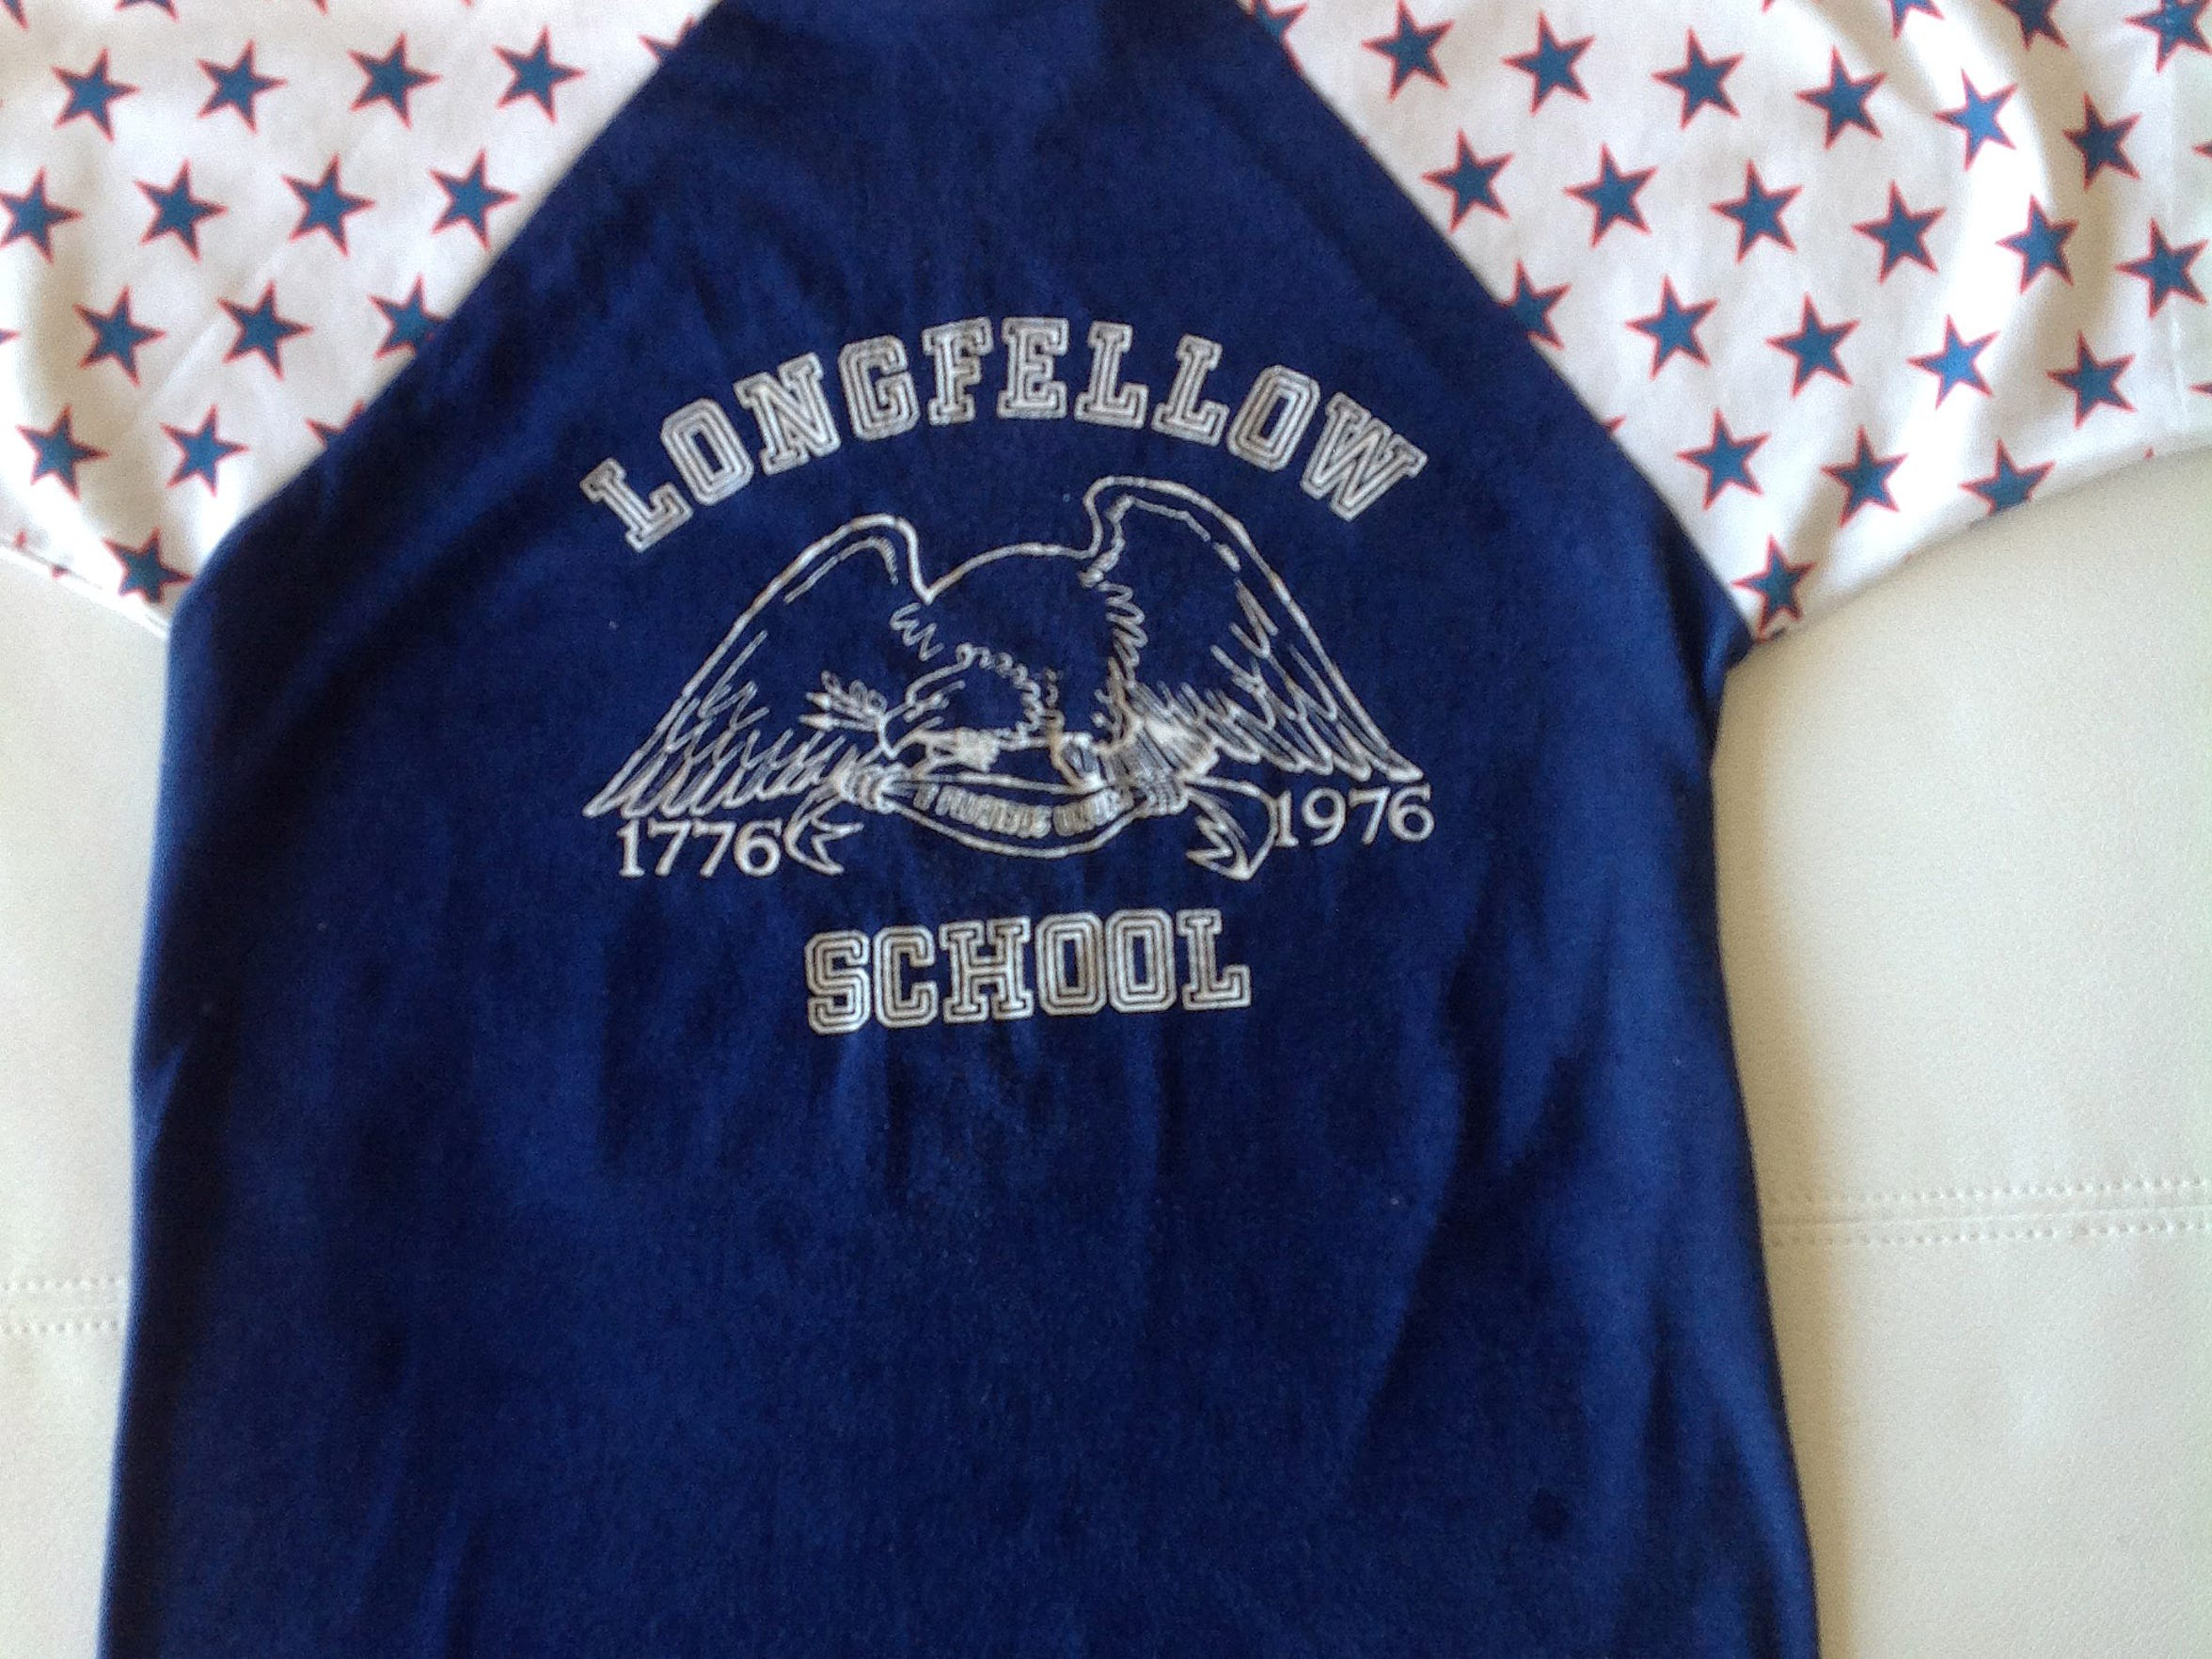 A Longfellow Elementary School T-shirt owned by Carrie